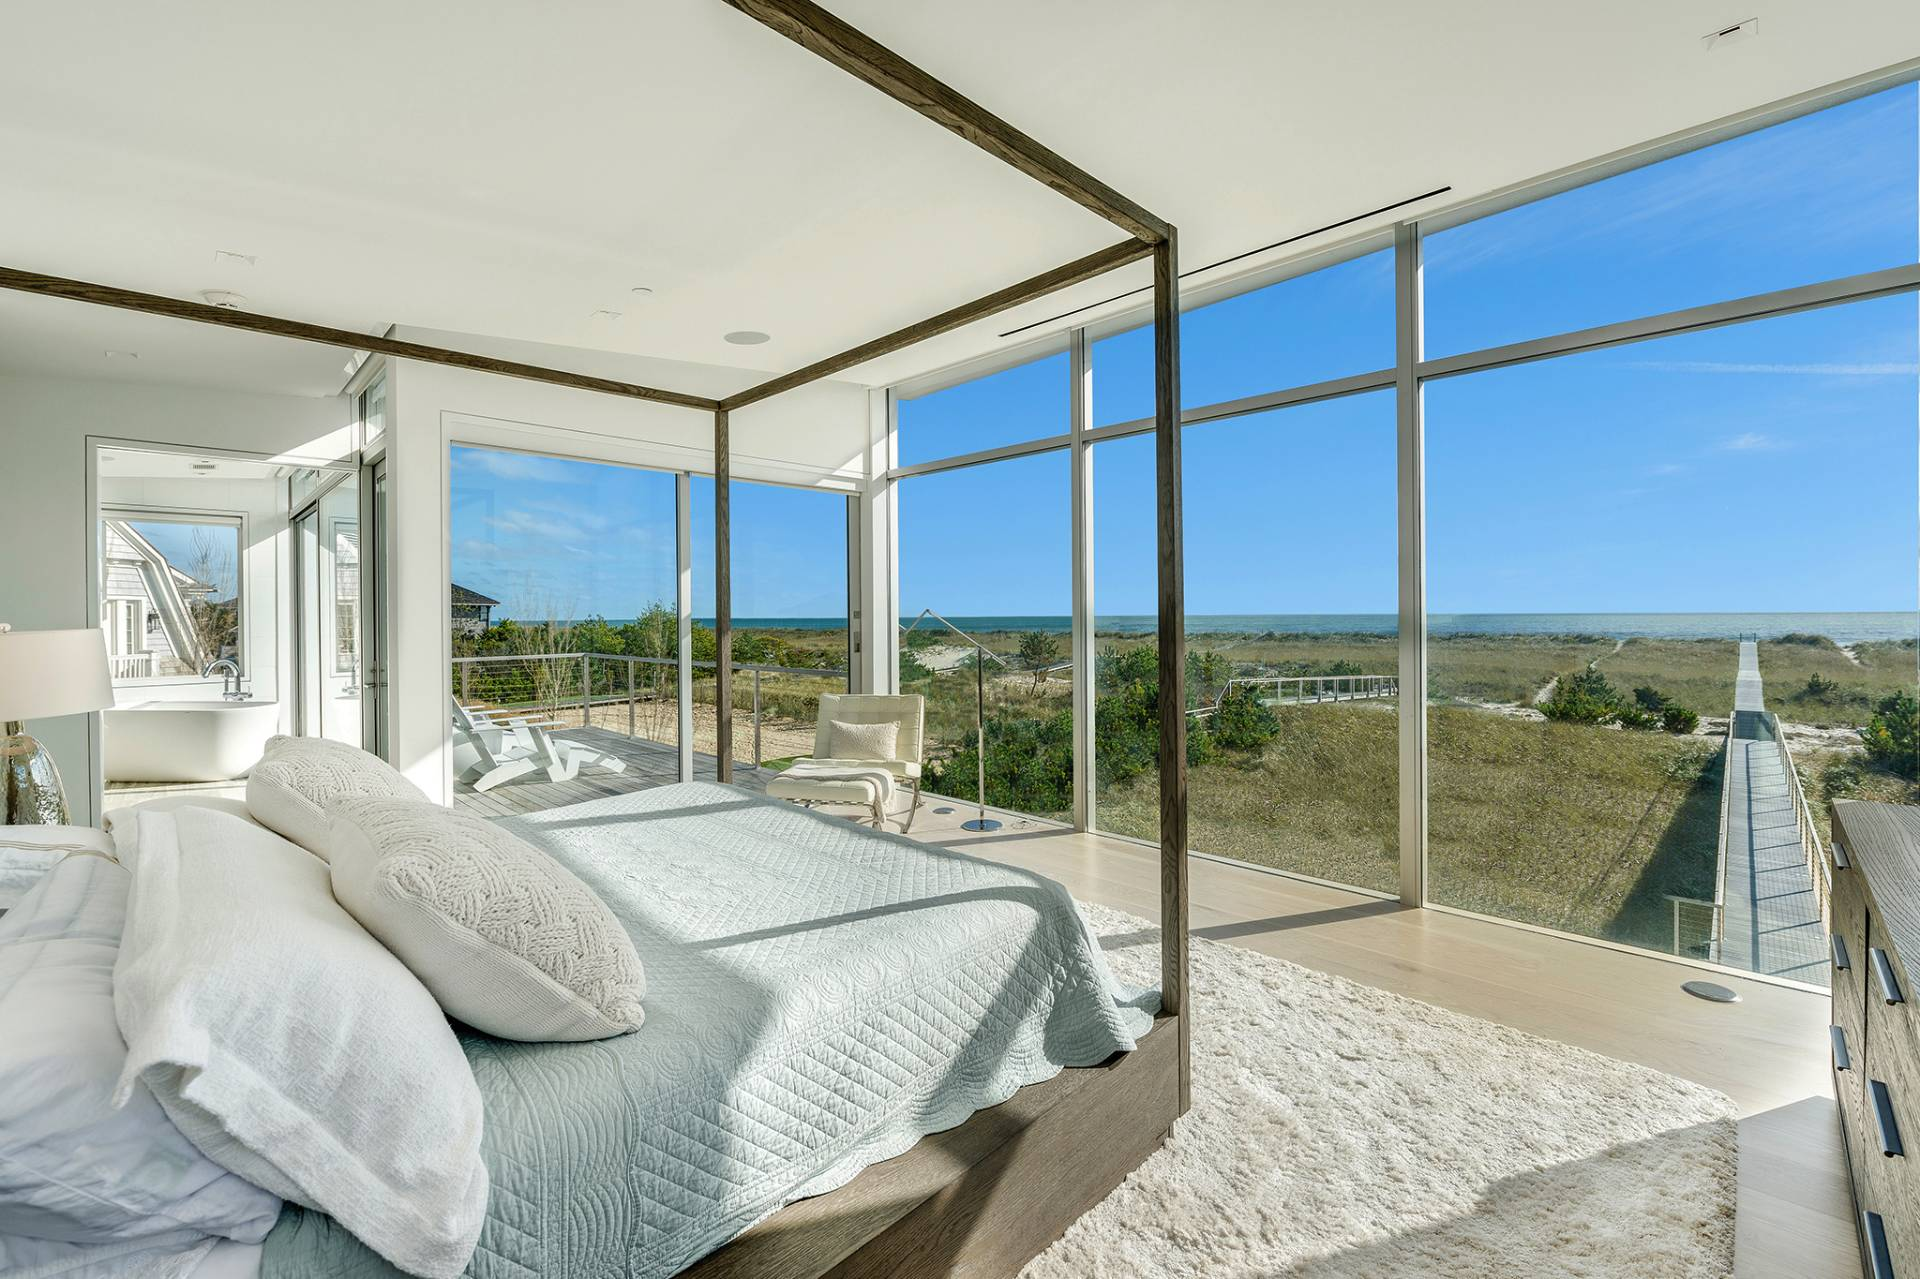 Single Family Home for Sale at Modern Oceanfront Masterpiece 'Between The Bridges' Westhampton Beach, New York